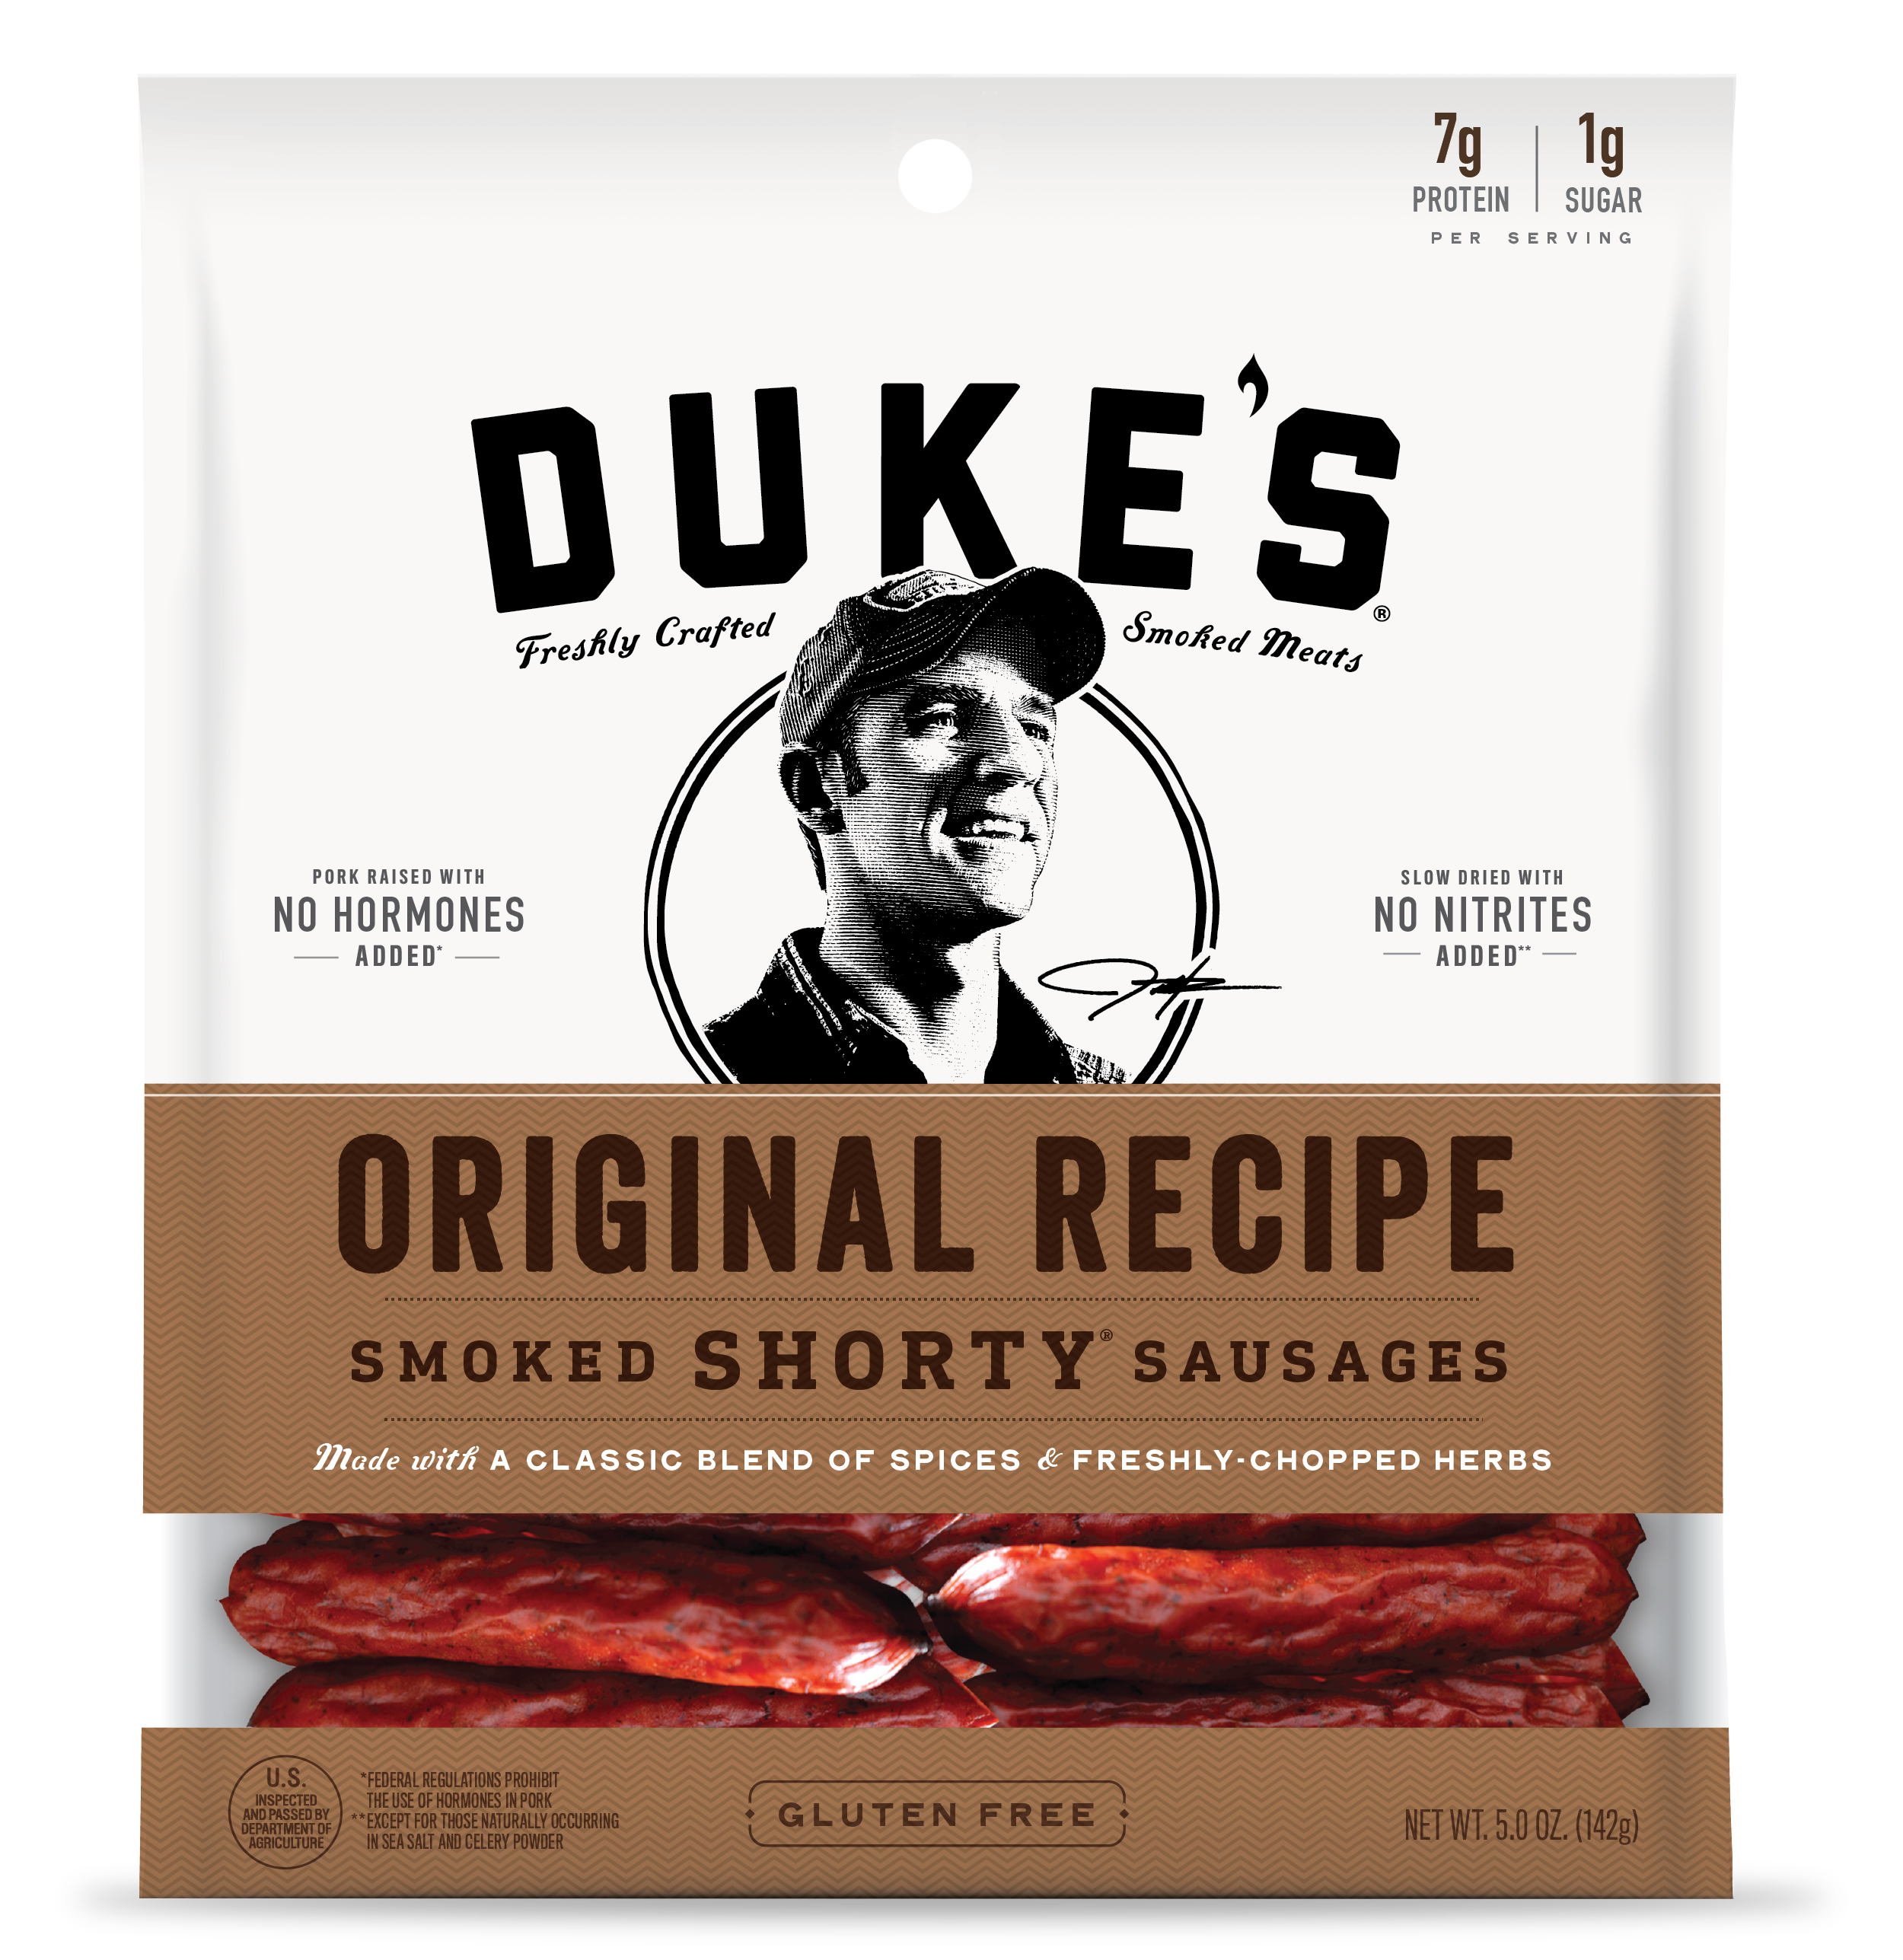 Conagra has agreed to acquire the maker of Duke's meat snacks.